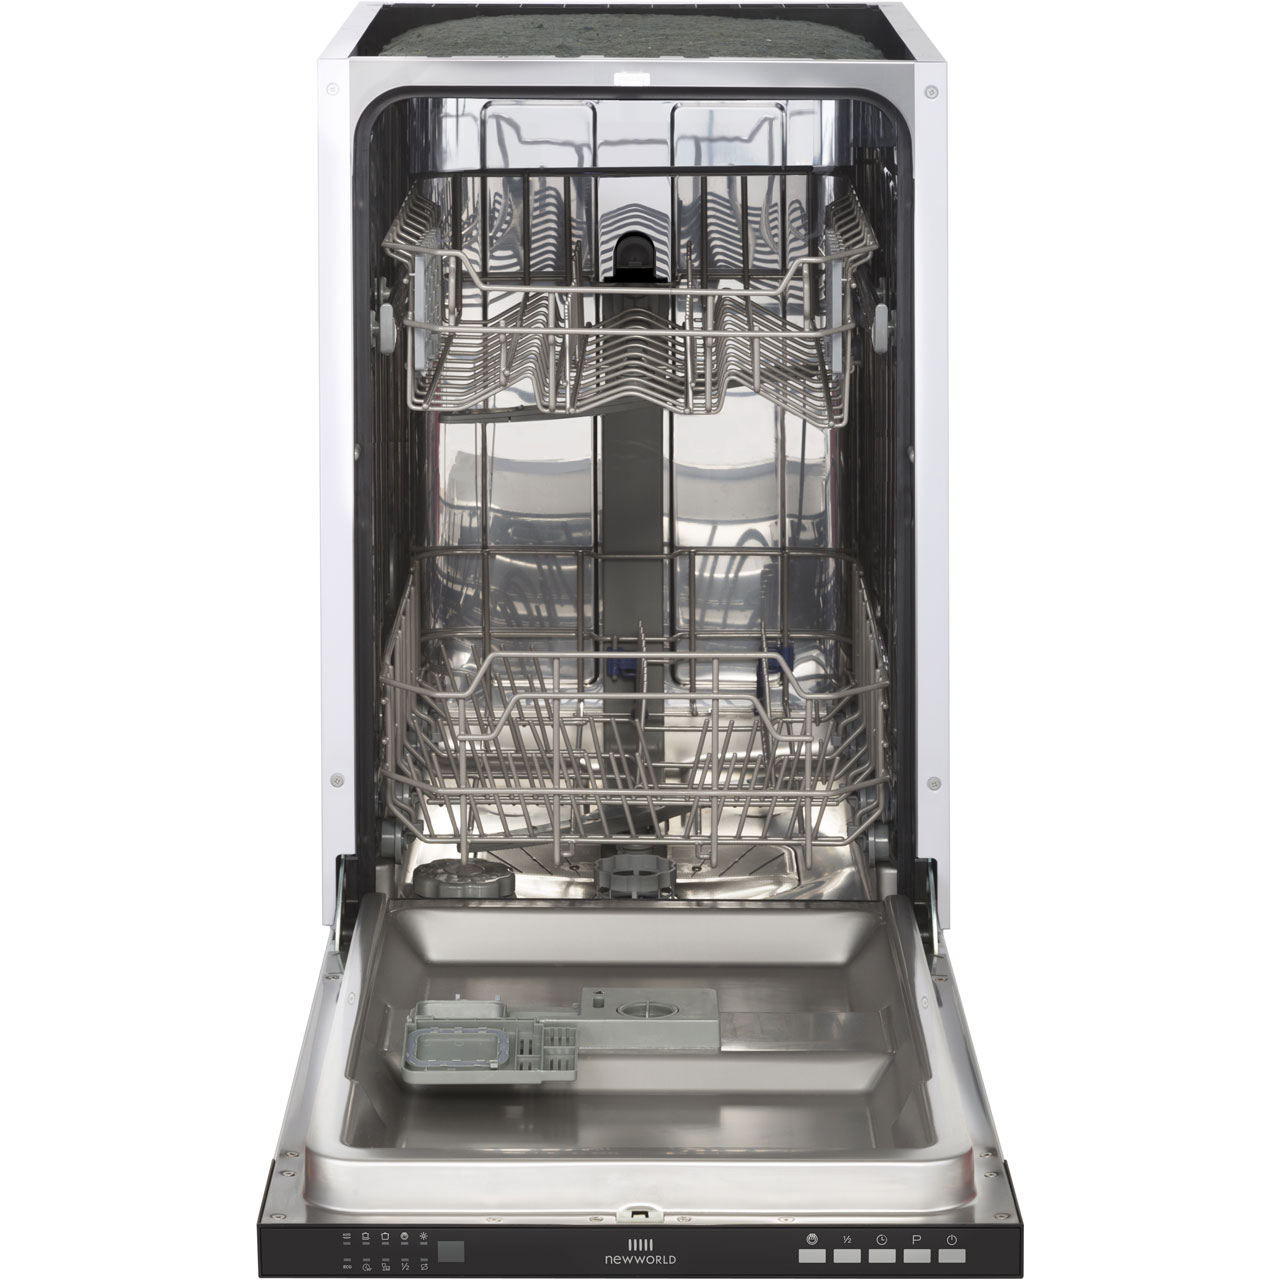 Newworld INDW45 Integrated Slimline Dishwasher in Black